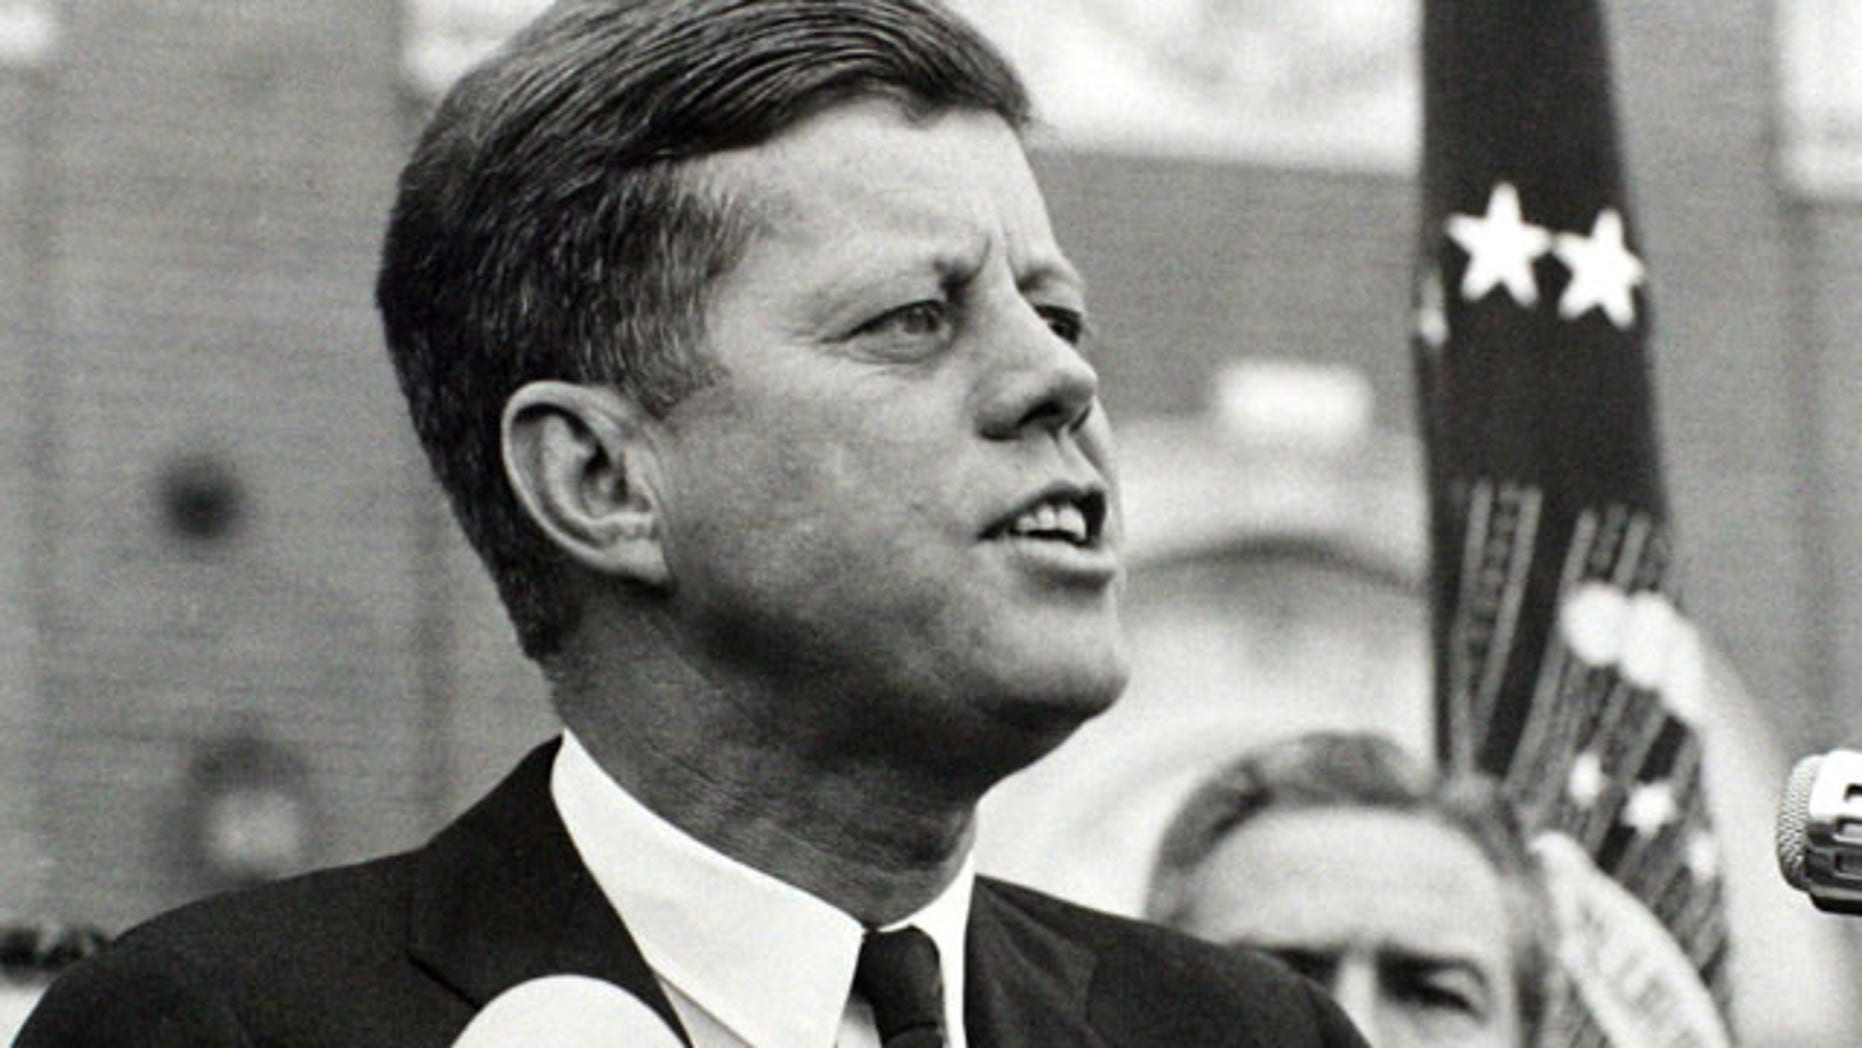 President John F. Kennedy delivers a speech at a rally in Fort Worth, Texas several hours before his assassination.